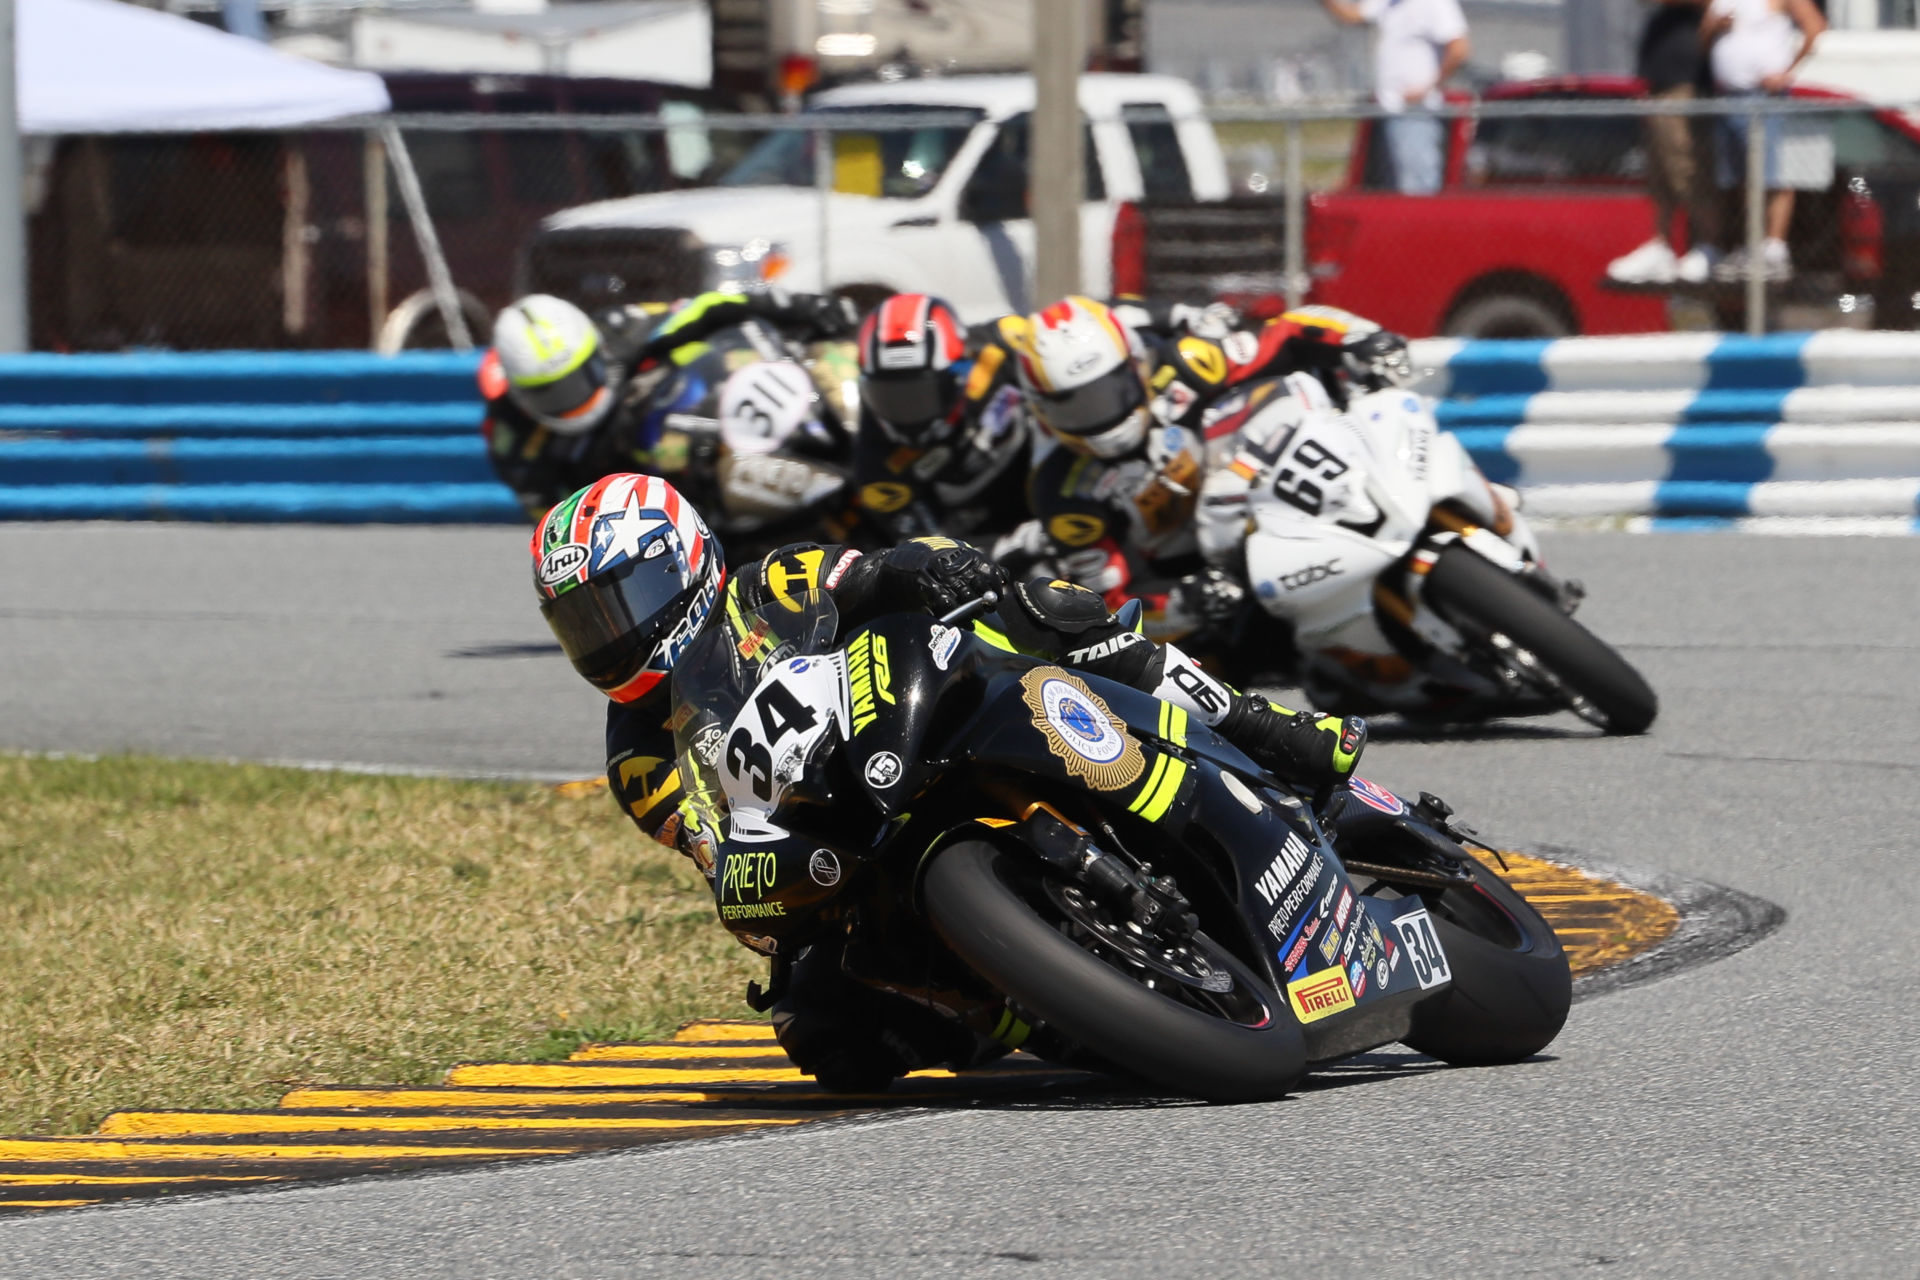 Michael Barnes (34), as seen during the 2017 Daytona 200. Photo by Brian J. Nelson.